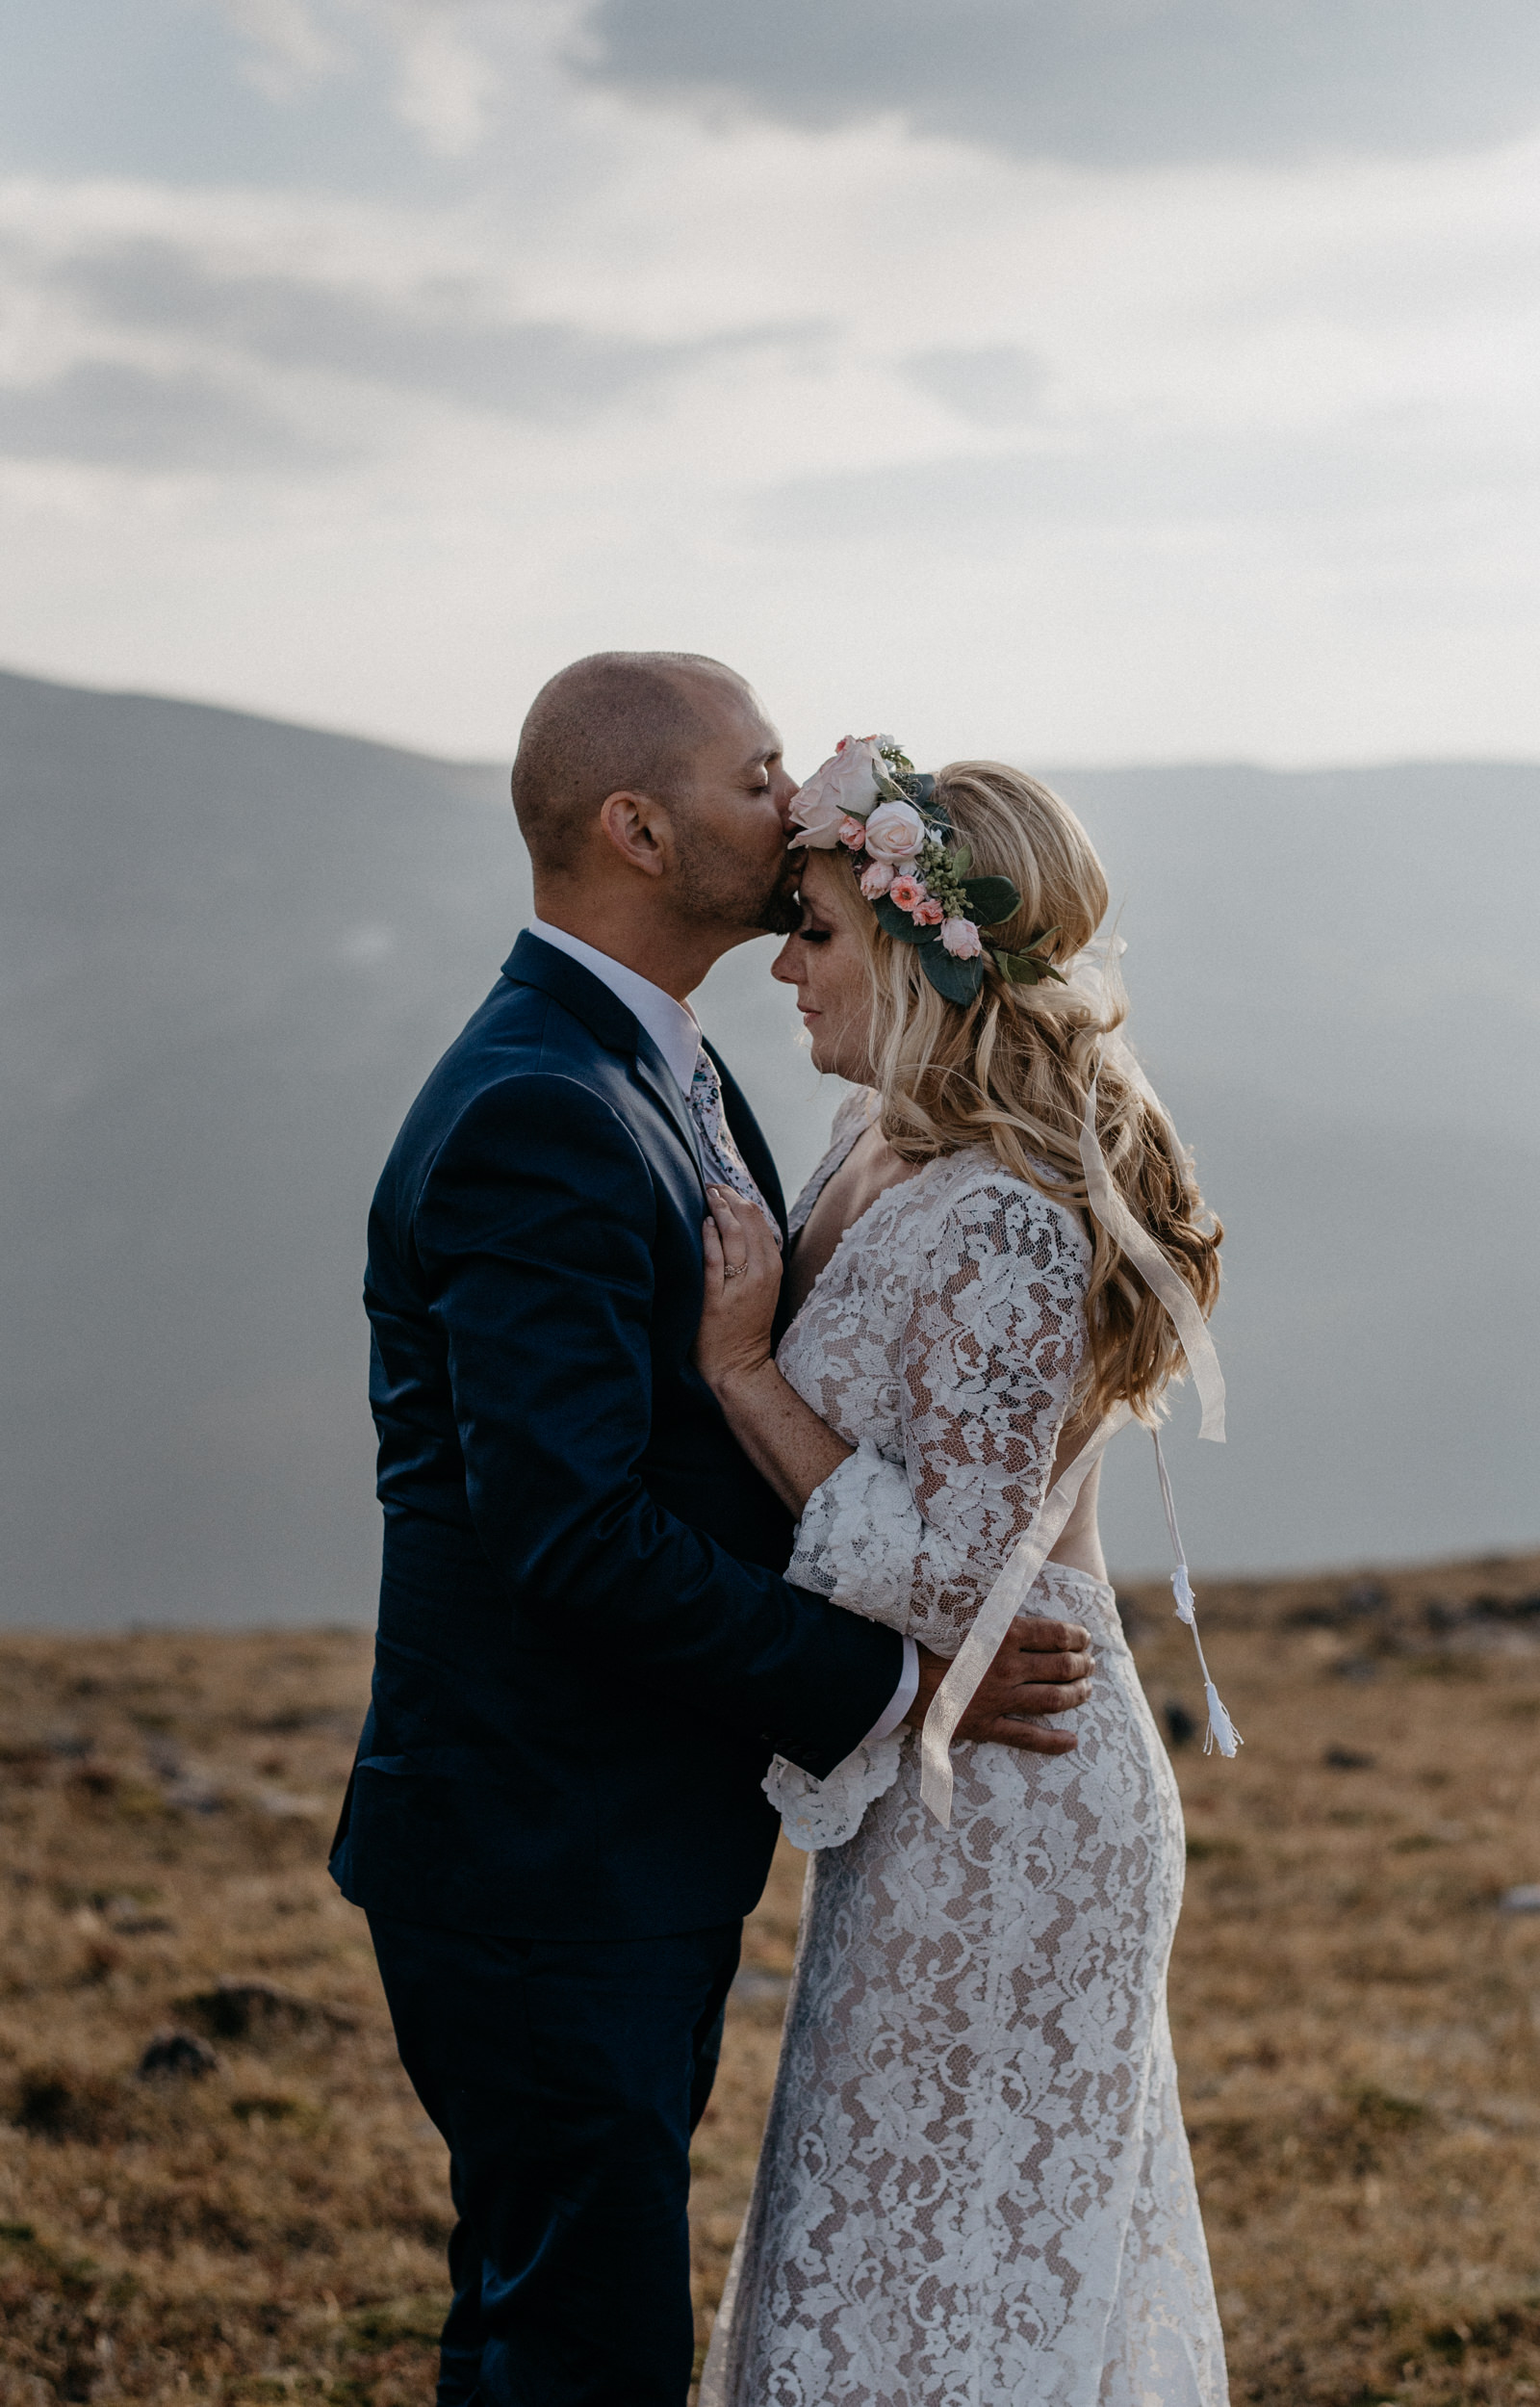 Trail Ridge Road elopement in Rocky Mountain National Park. Colorado elopement and wedding photographer.